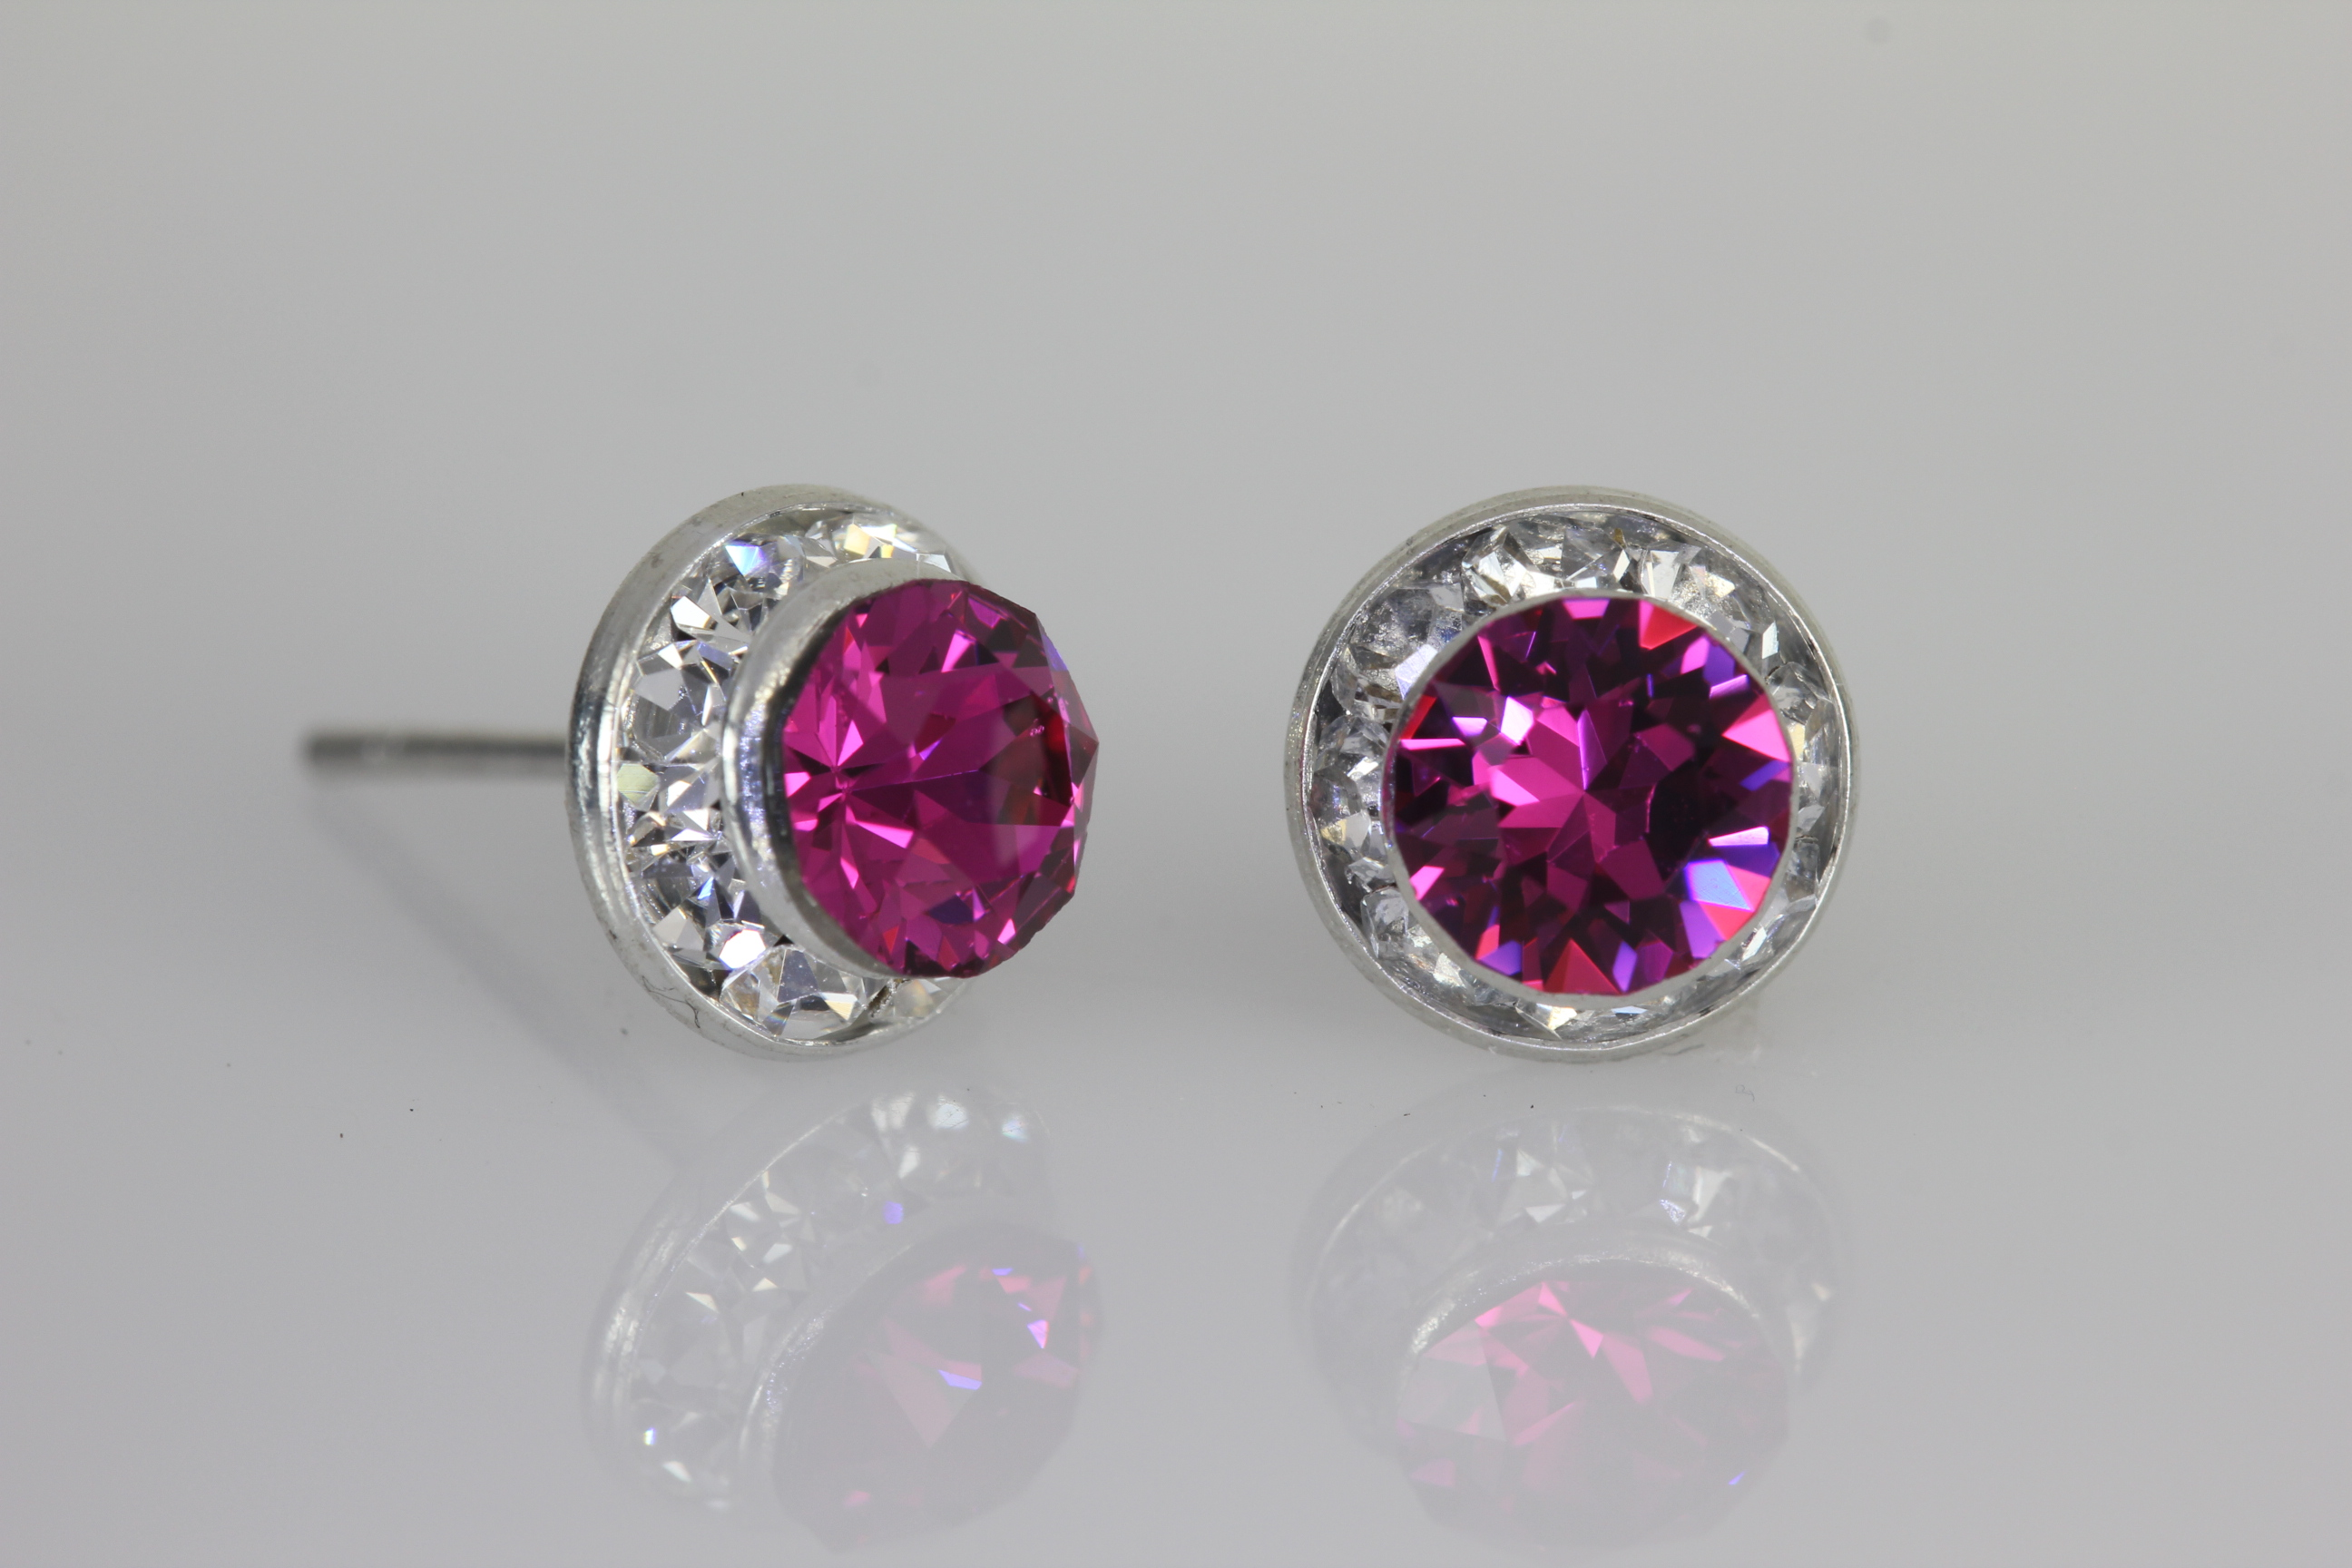 Rondelle Crystal Earrings With Xirius Chaton Crystals From Swarovski Medium Fuchsia